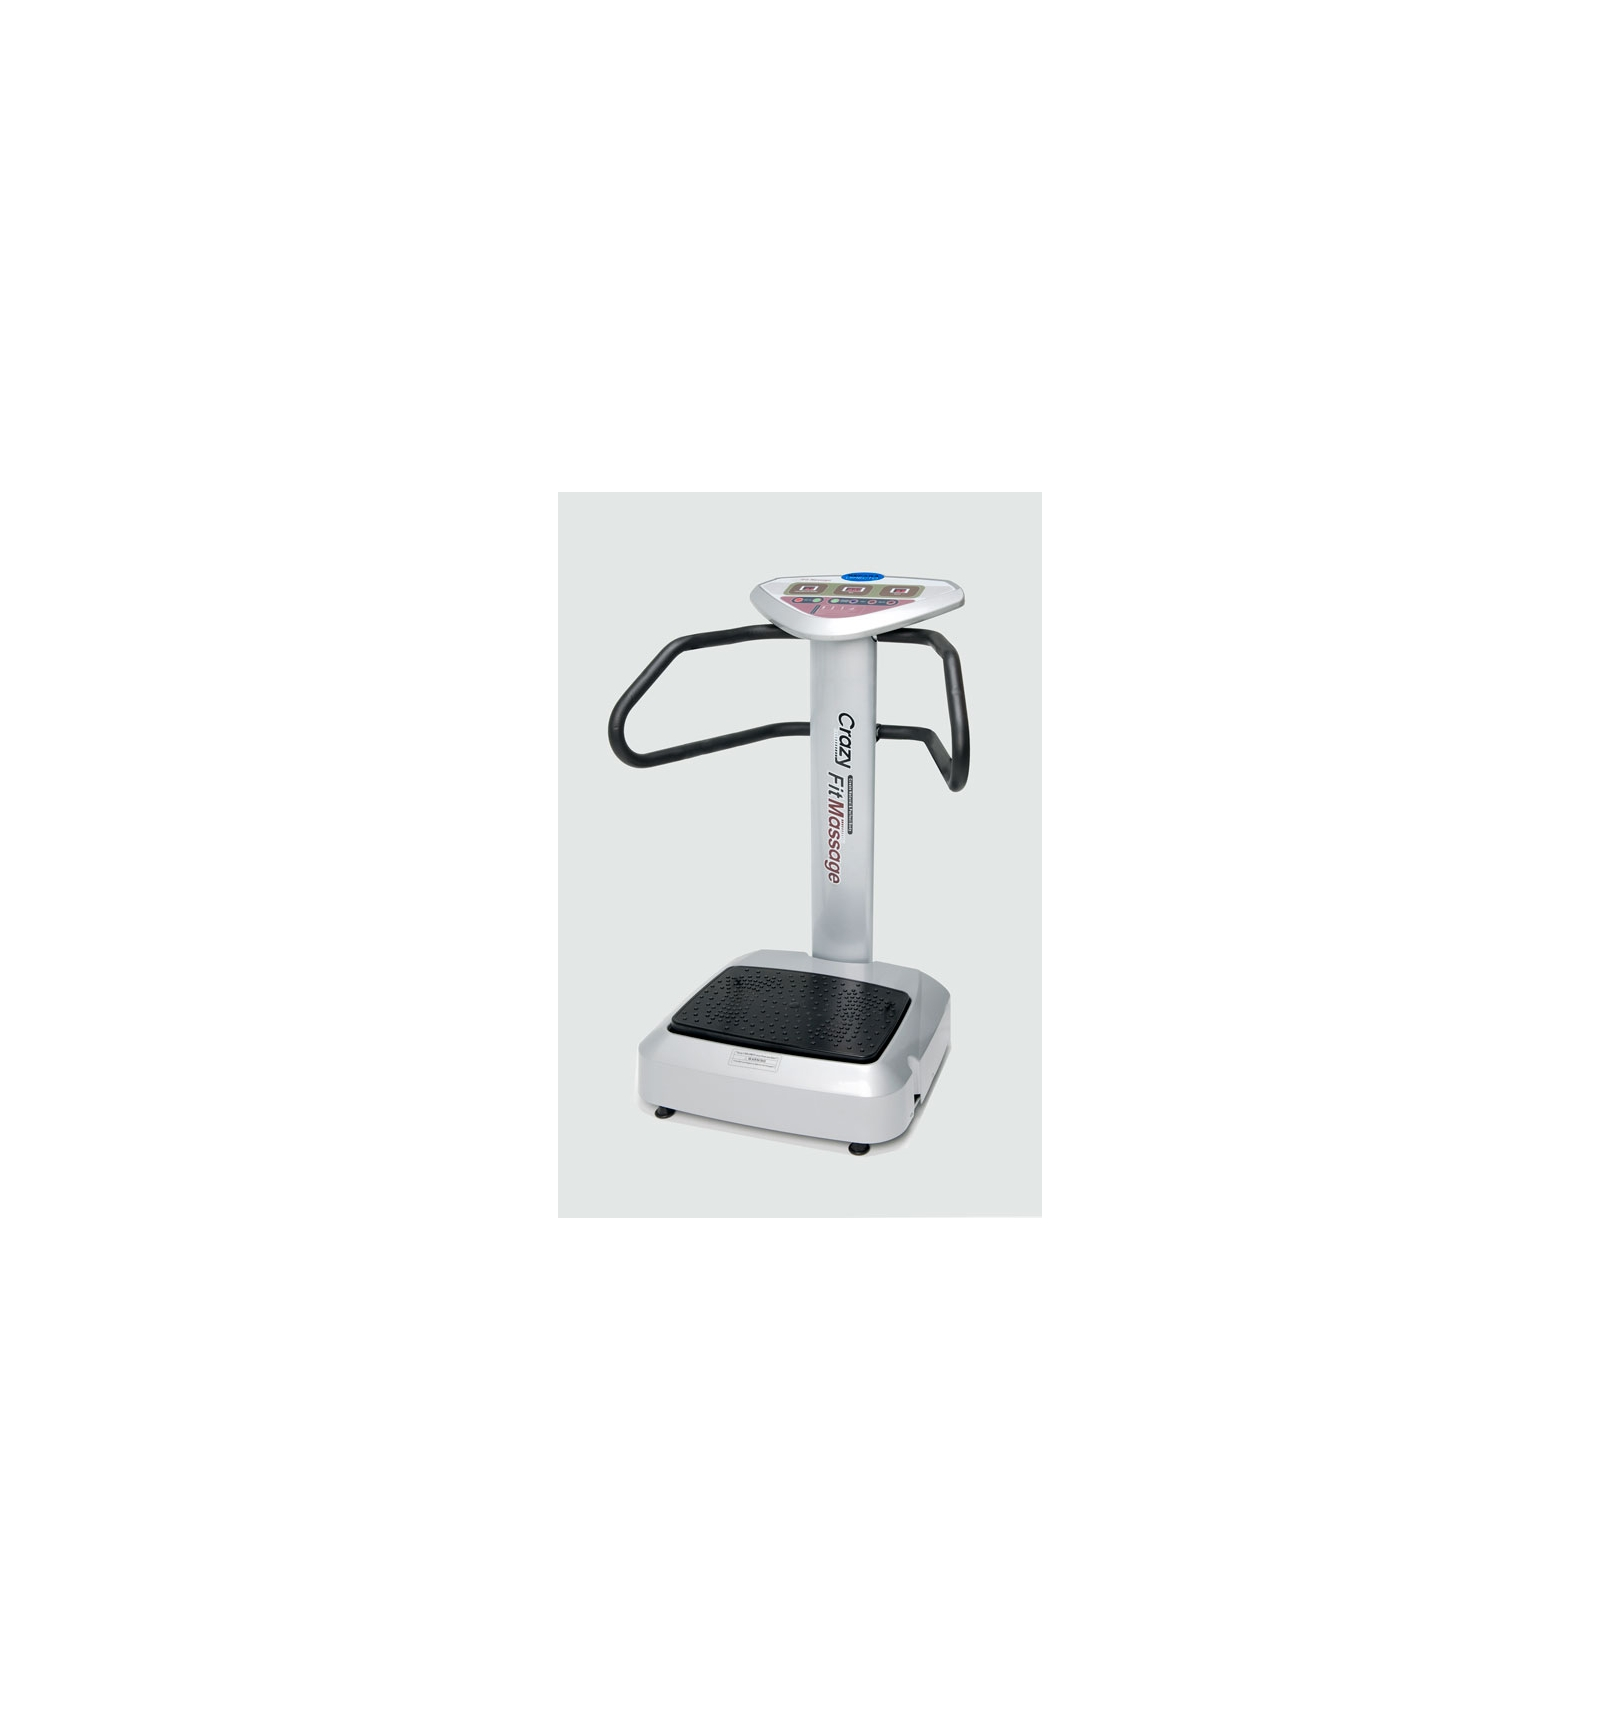 Pedana Vibrante Massaggiante Pedana Oscillante Crazy Fit Massage Semi Professionale